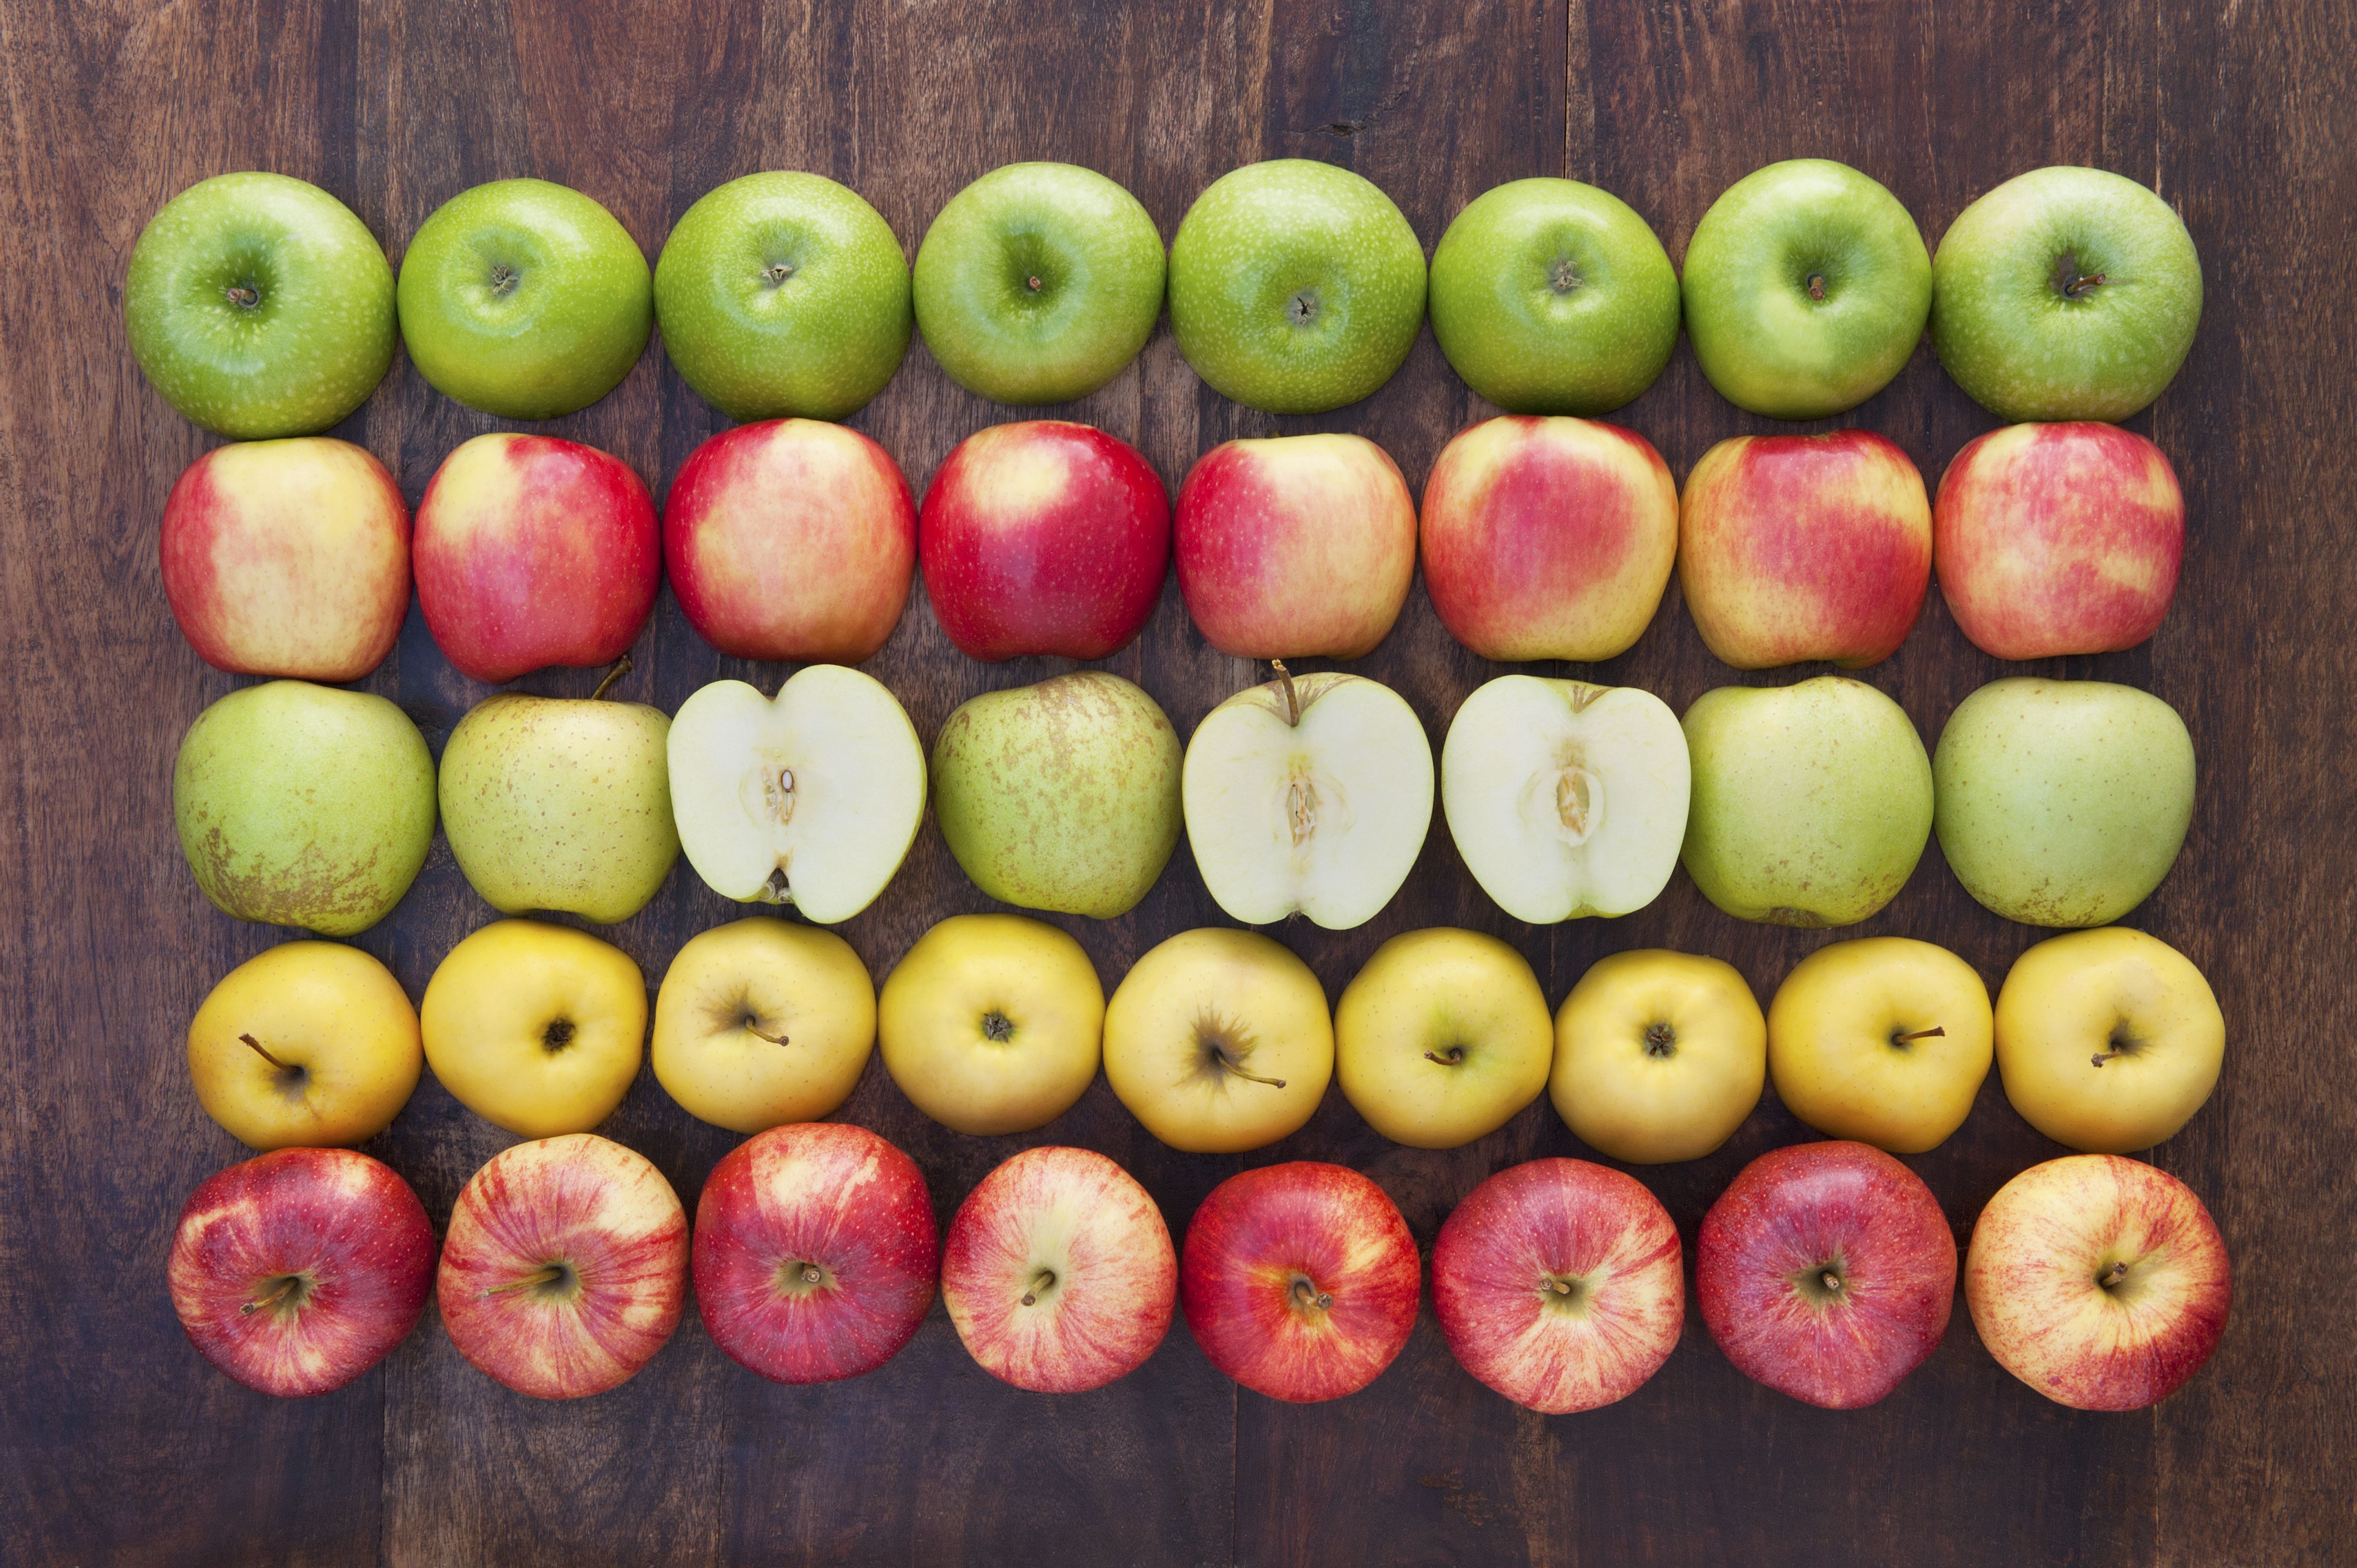 Country Life Today: The $10 million apple that stays ripe and fresh for an entire year